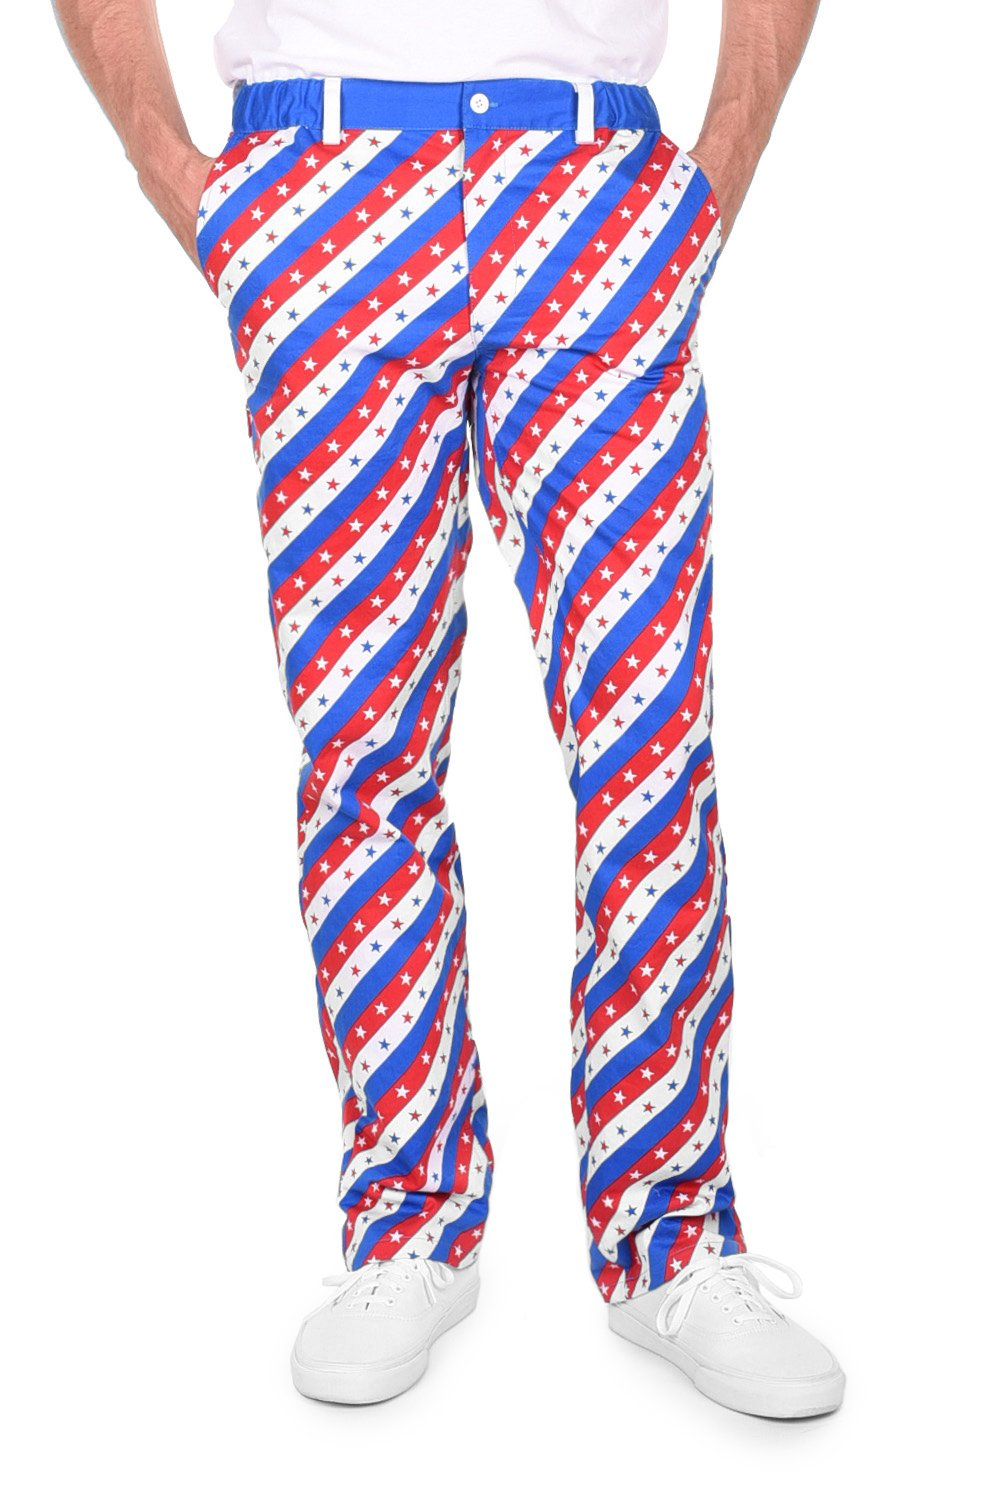 Tipsy Elves Men's Red White and Blue Patriotic USA Pants Bottoms (X-Large)